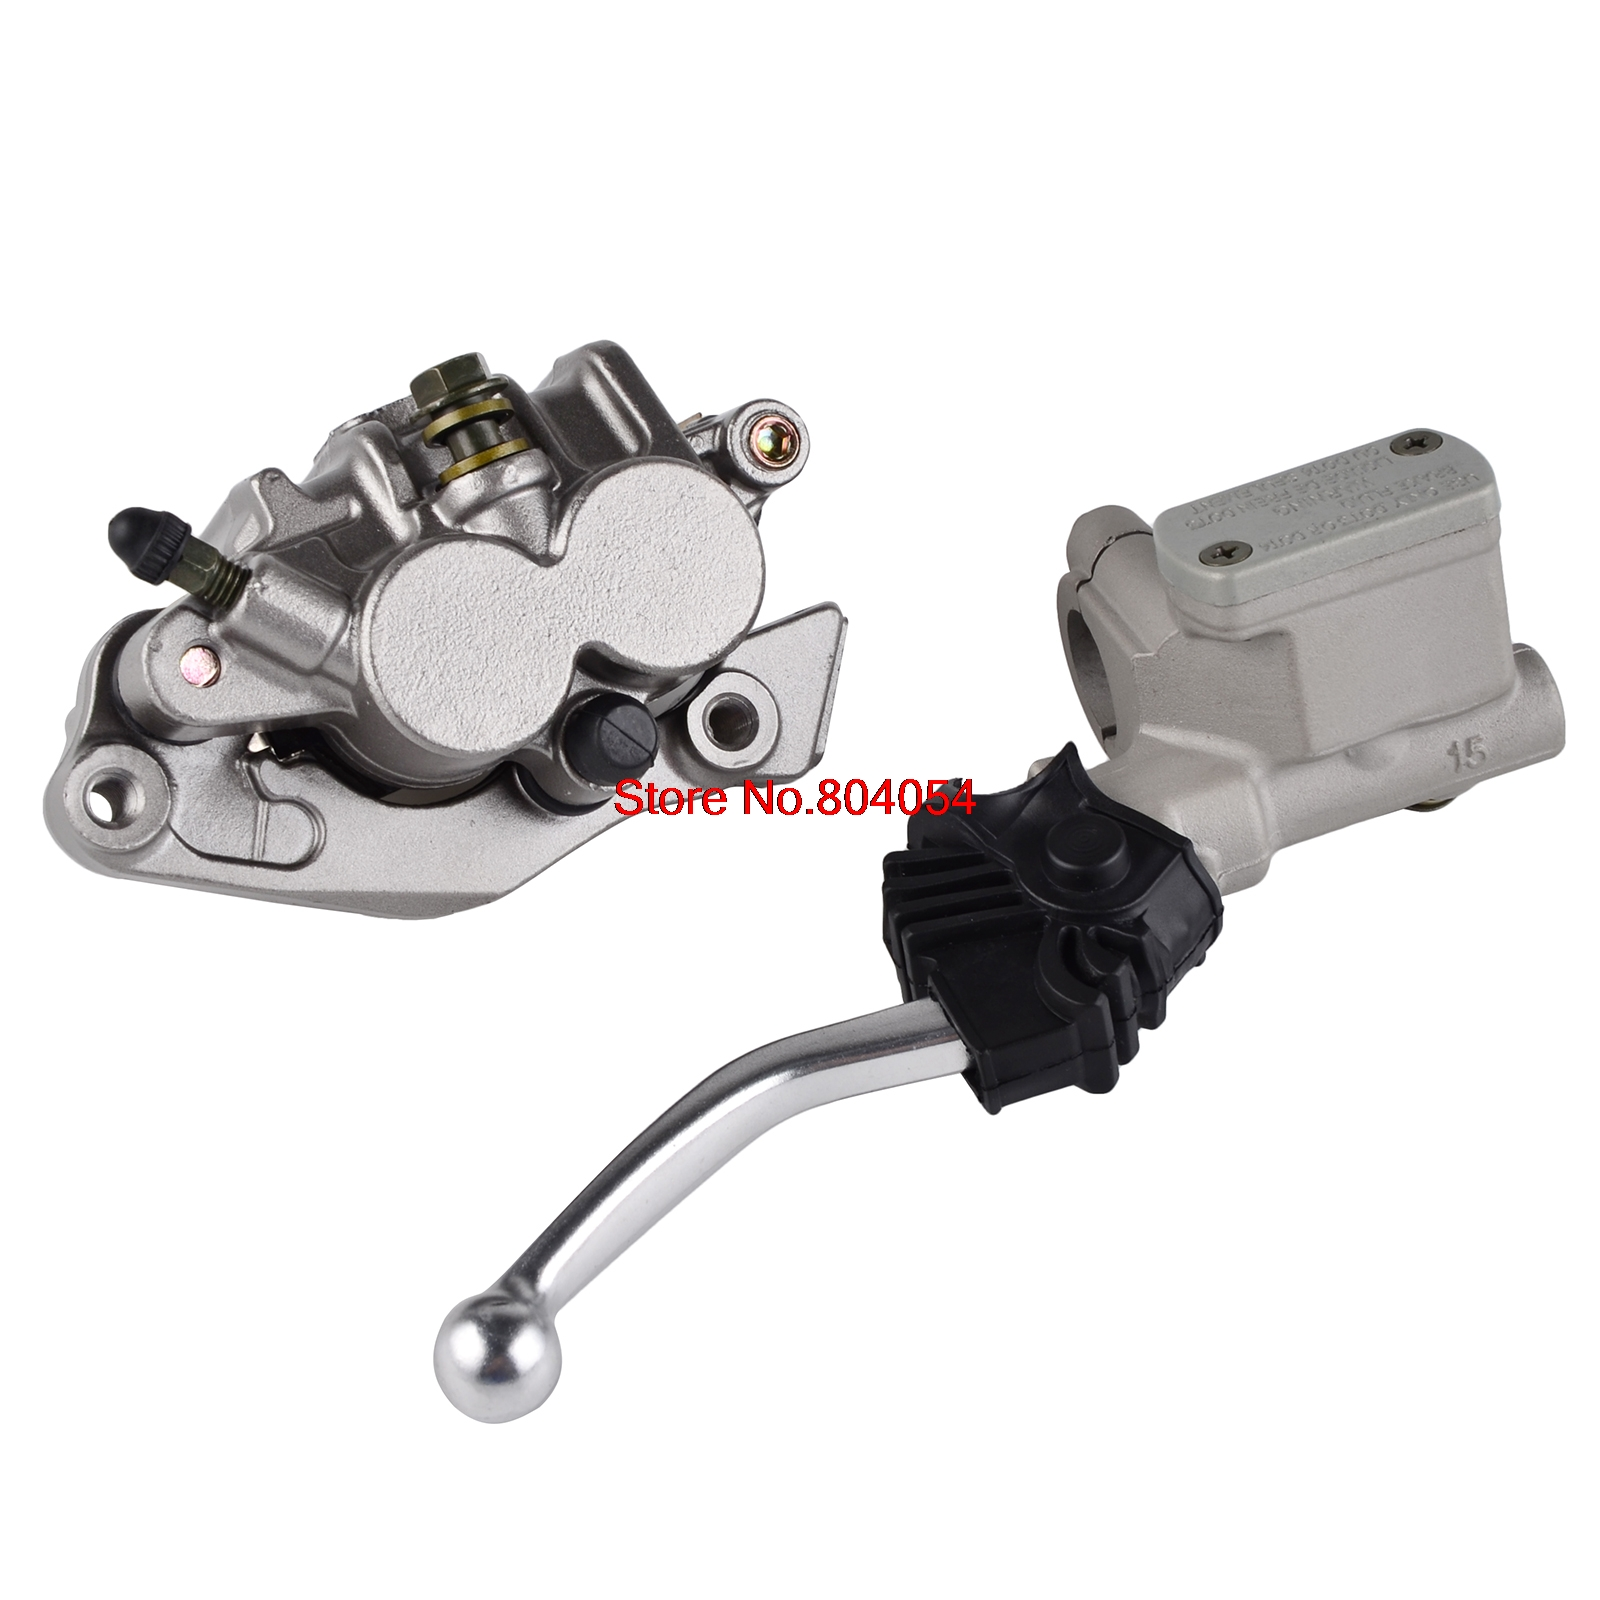 Front Master Cylinder Lever & Brake Caliper Pads For Honda XR250R XR400R XR600R XR650L XR650R new brake caliper for polaris left front with ceramic pads 250 300 325 330